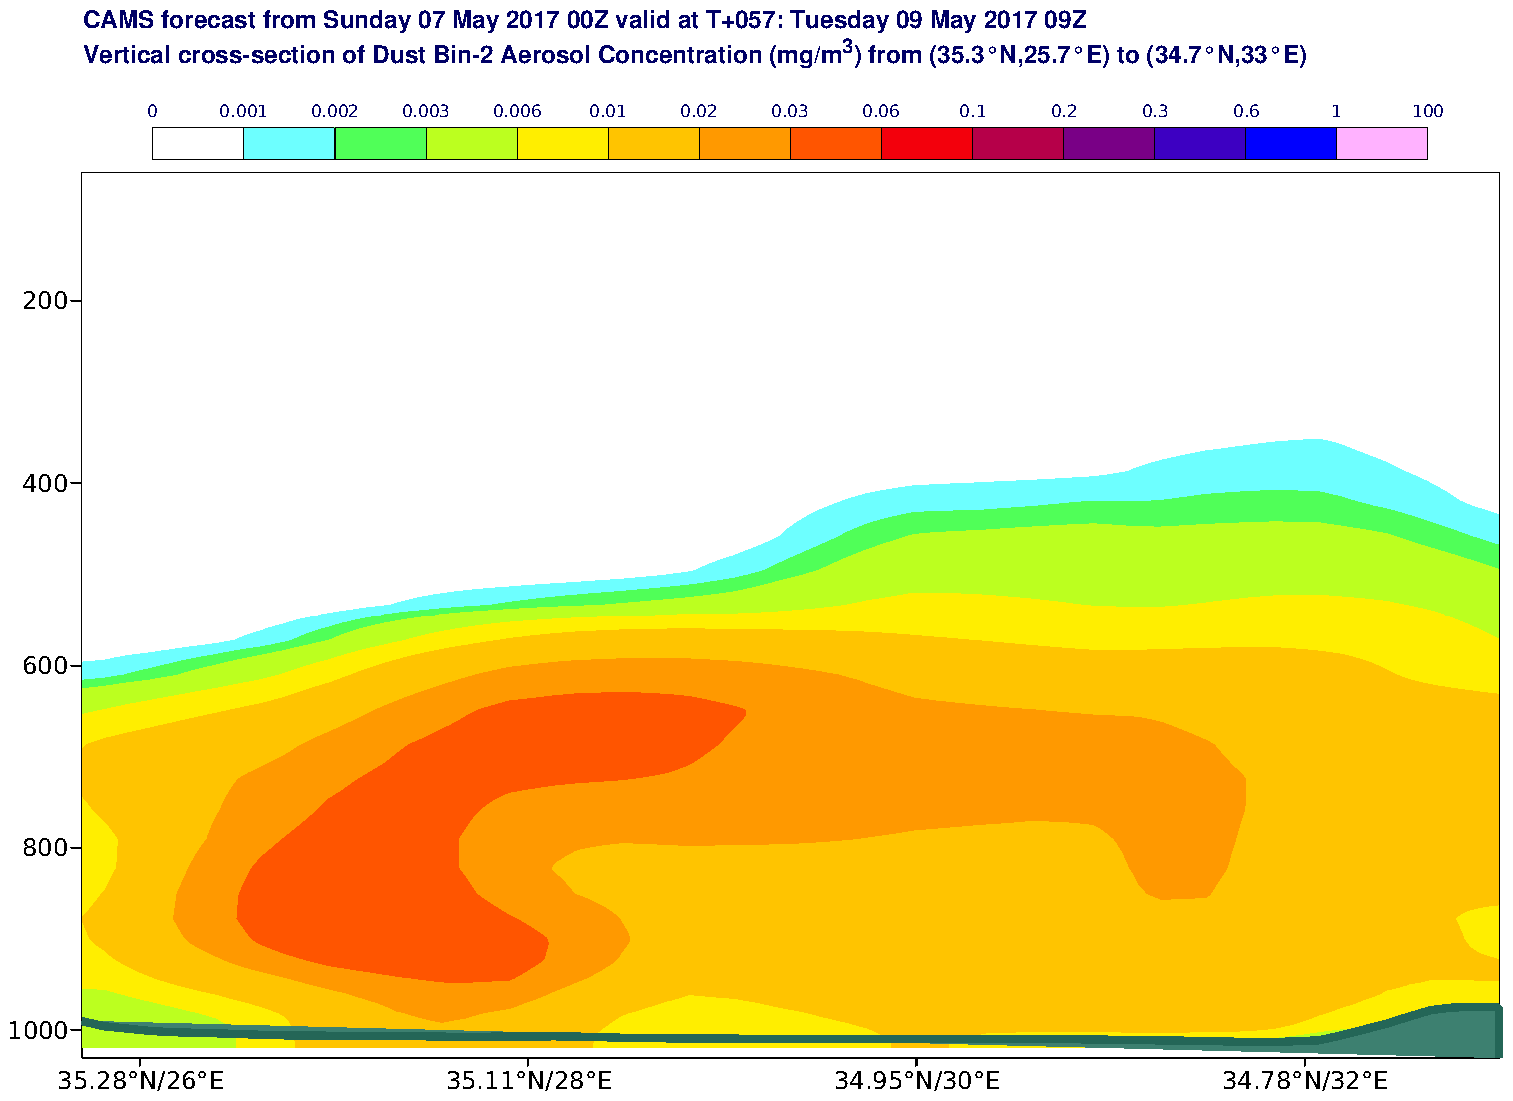 Vertical cross-section of Dust Bin-2 Aerosol Concentration (mg/m3) valid at T57 - 2017-05-09 09:00